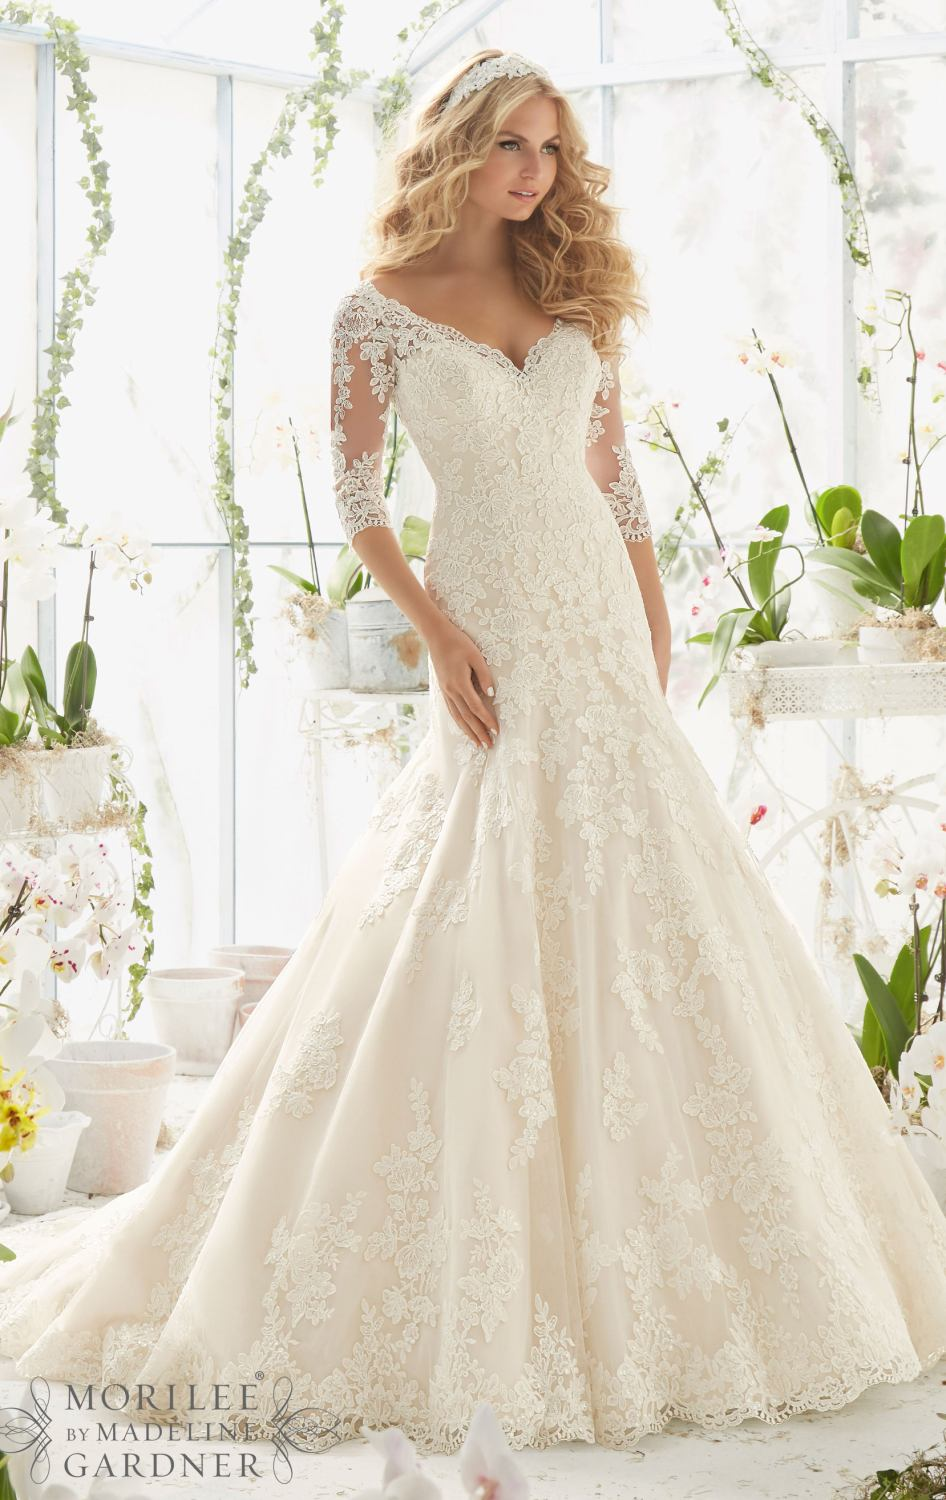 J147 long sleeve wedding dresses plus size wedding dresses elegant j147 long sleeve wedding dresses plus size wedding dresses elegant mermaid wedding dresses junglespirit Images